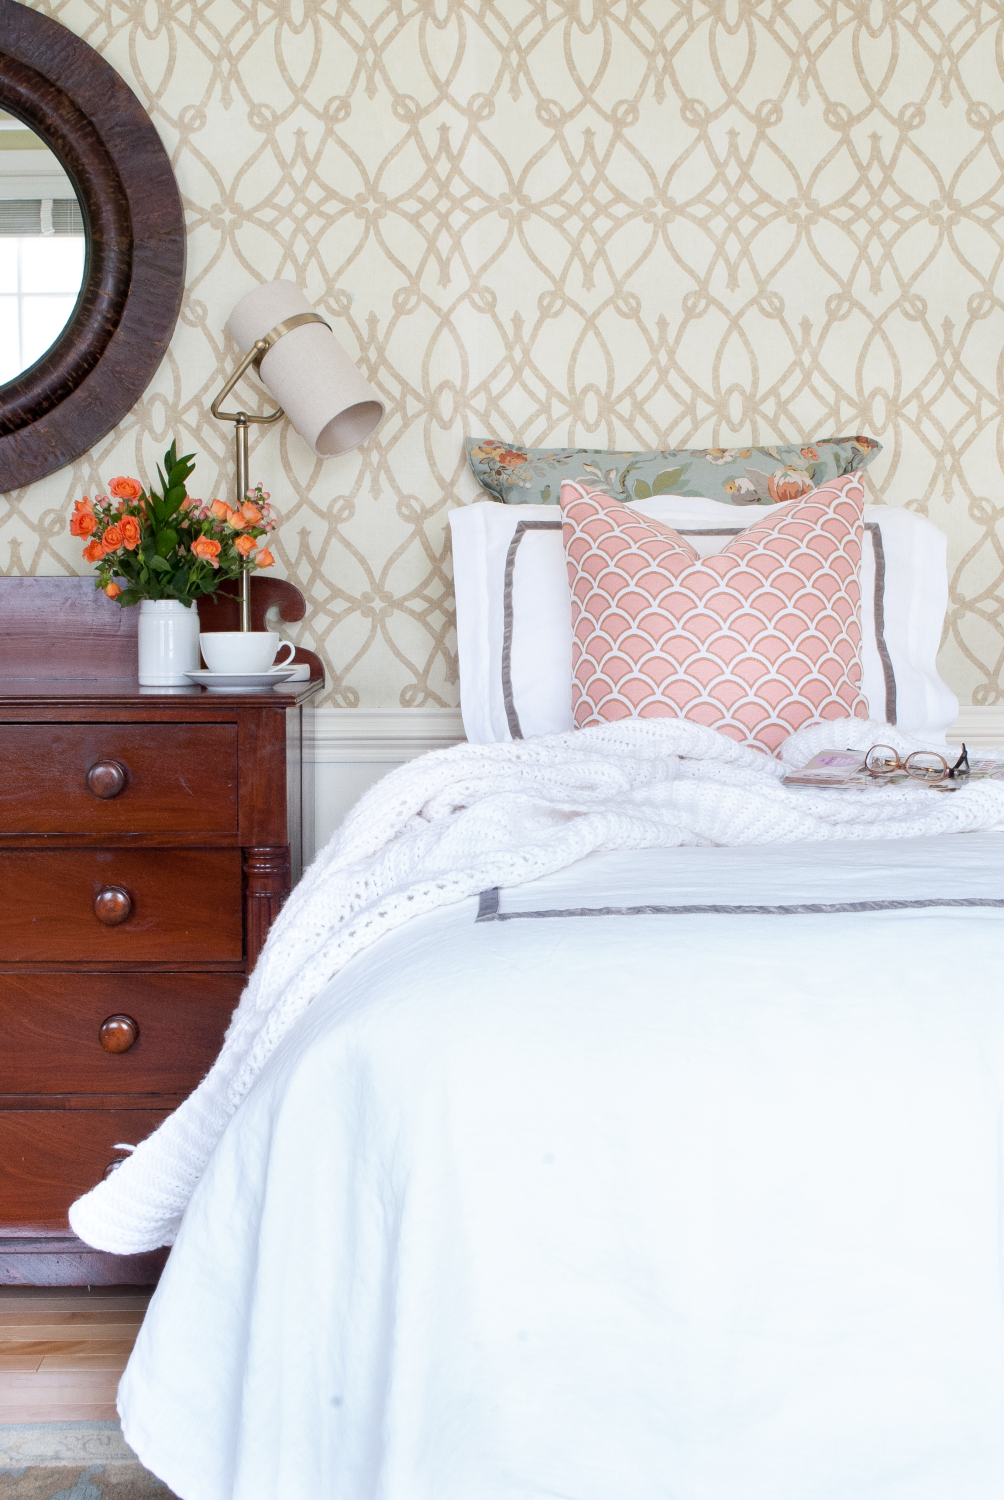 quality twin bedding from pemberley rose  the chronicles of home - classic bedroom with white duvet soft graphic wallpaper dusty blue andblush accents